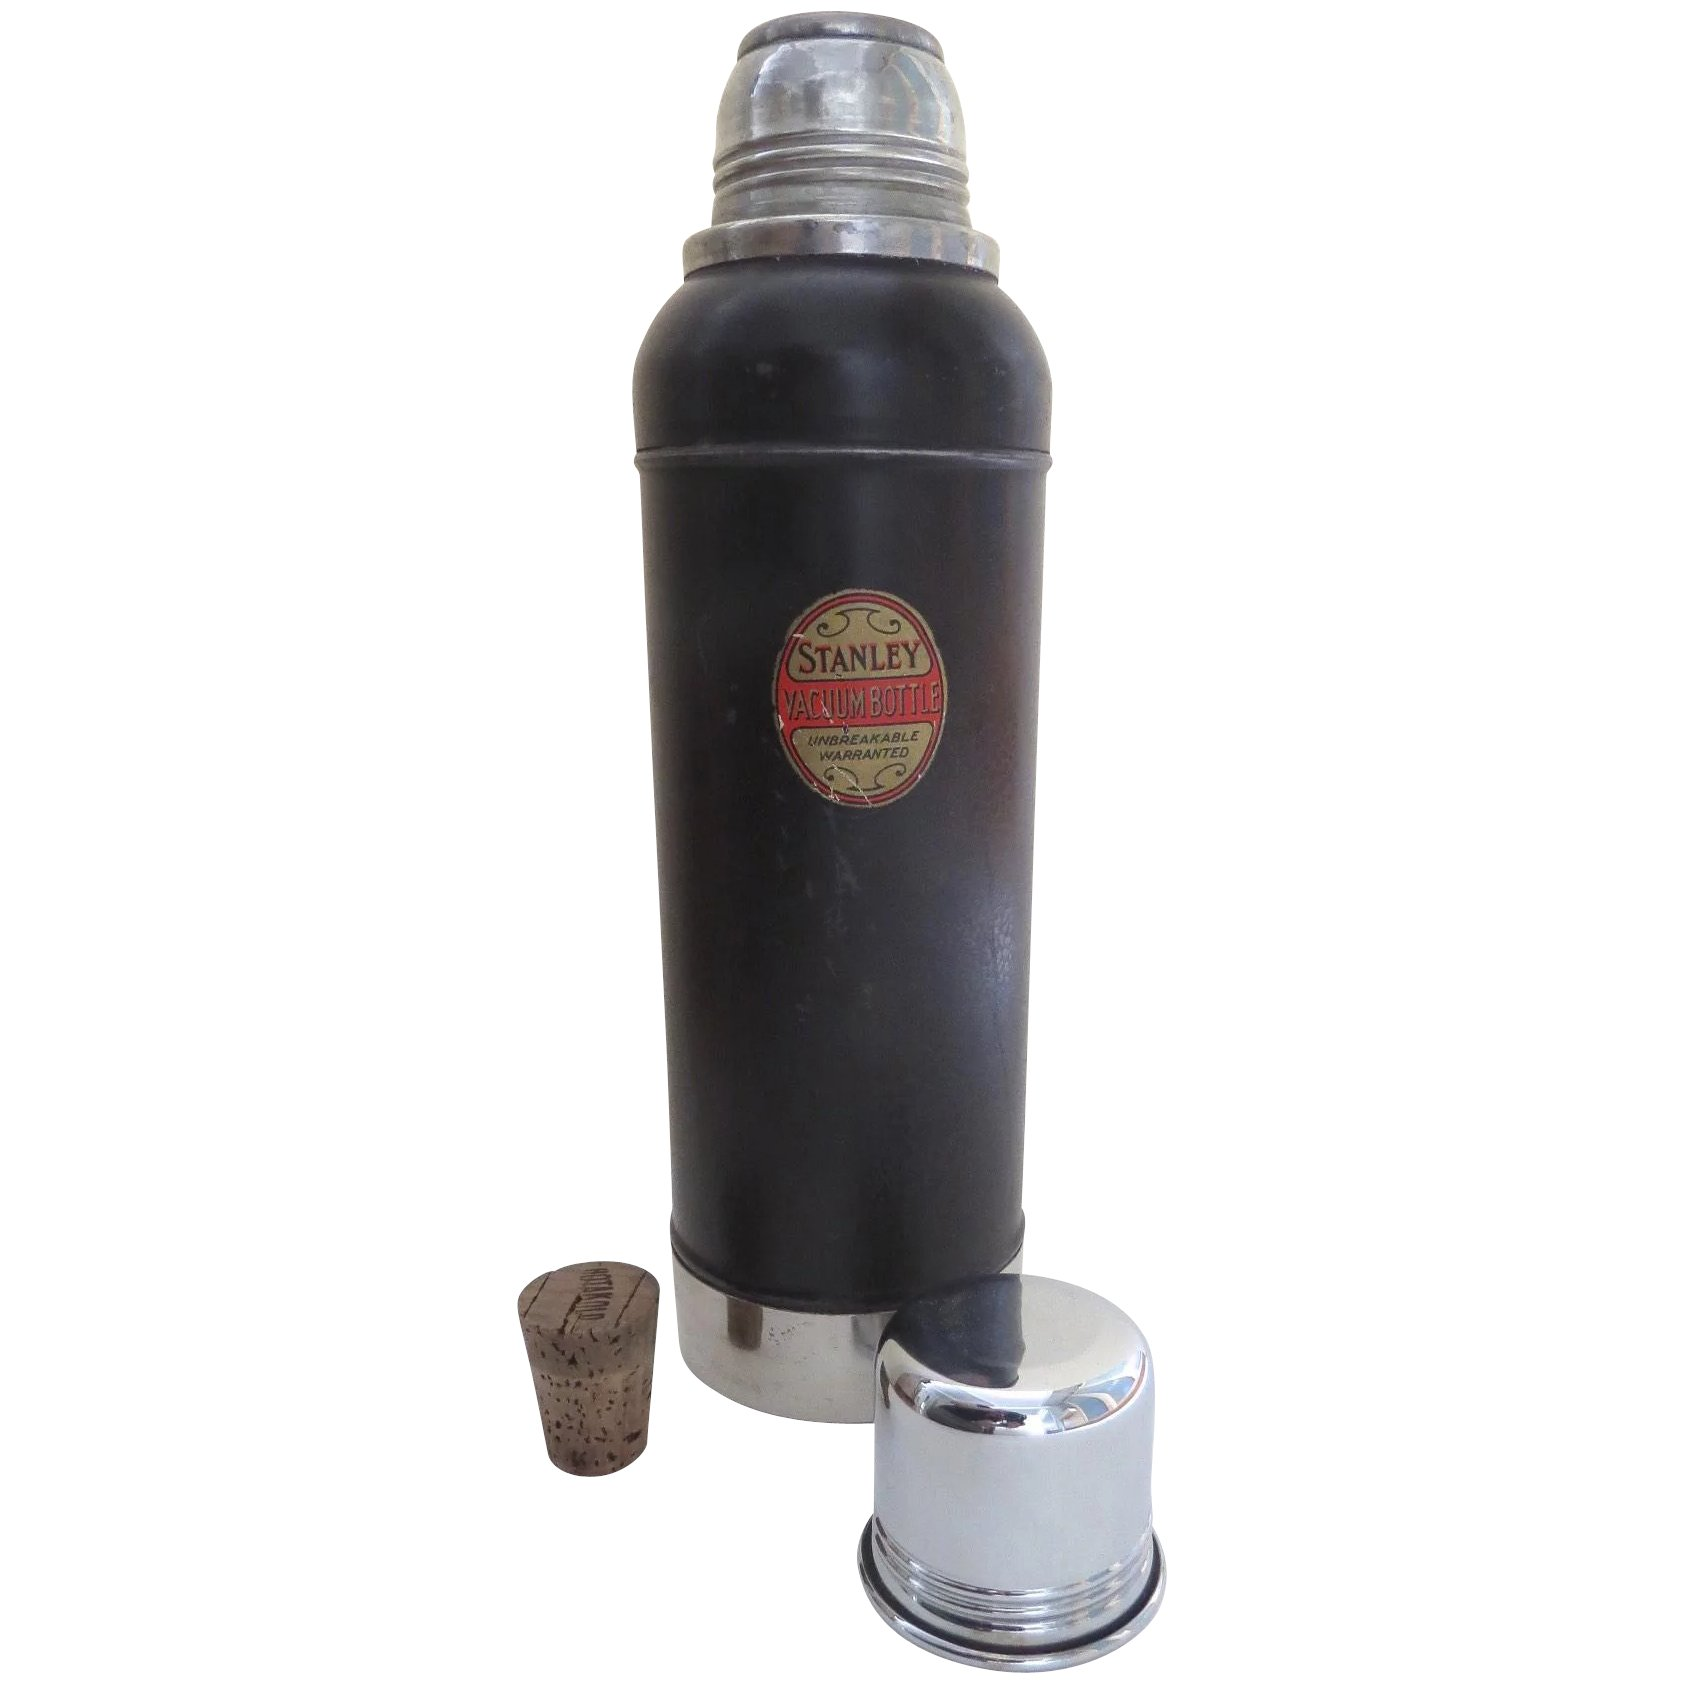 Vintage 1920's Stanley Super Vac Thermos with Cork Great Barrington